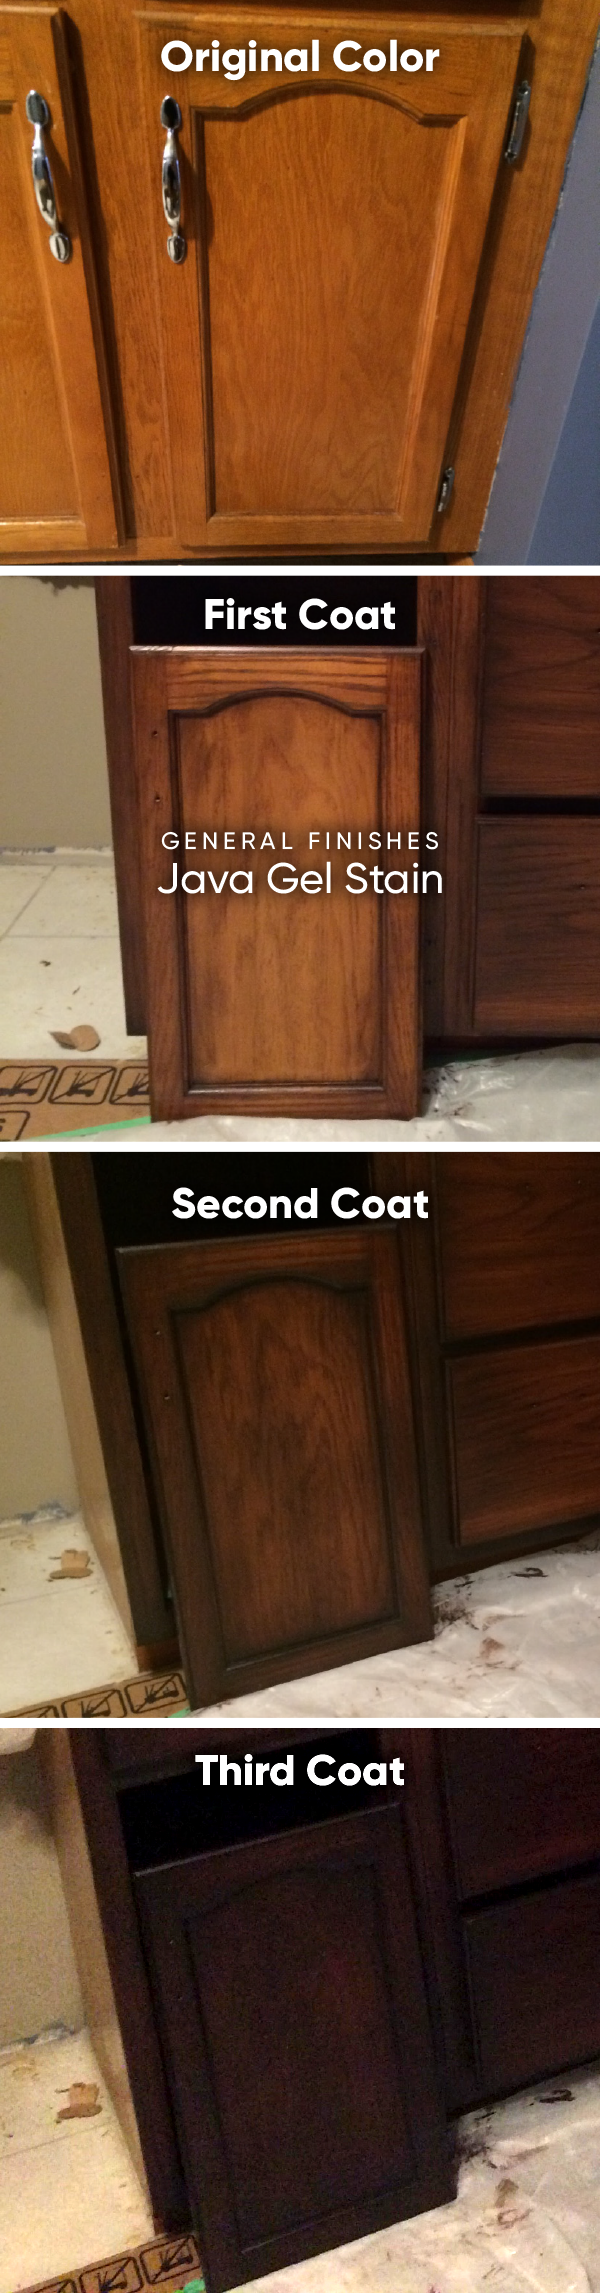 Gel Stain General Finishes Java